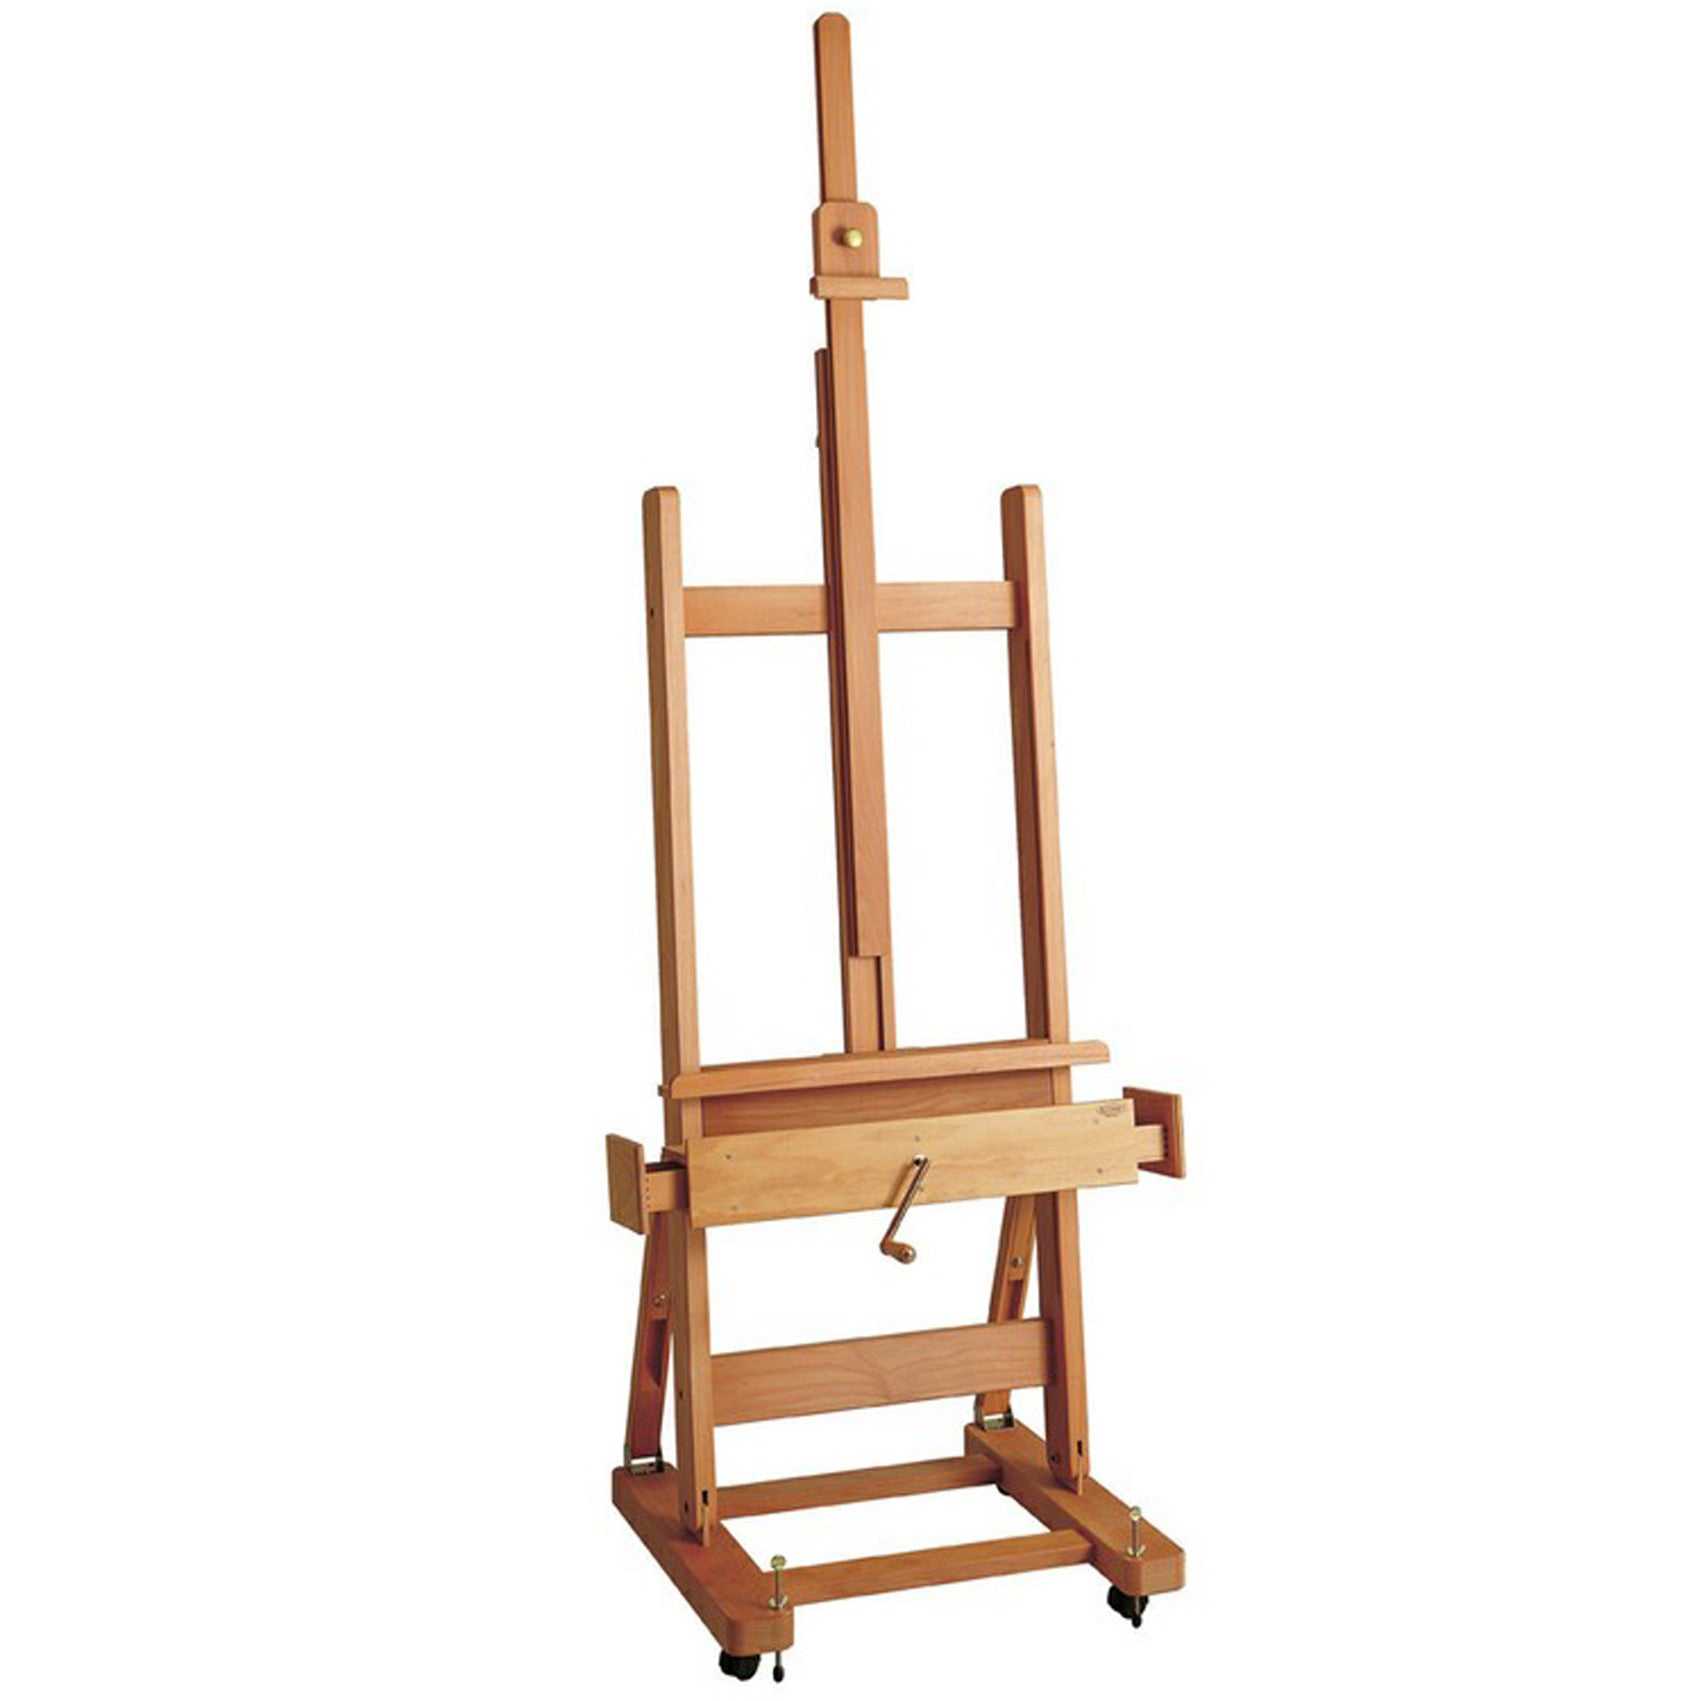 <b>HUGE SAVINGS ON EASELS</b><br>Mabef M04 Studio Easel